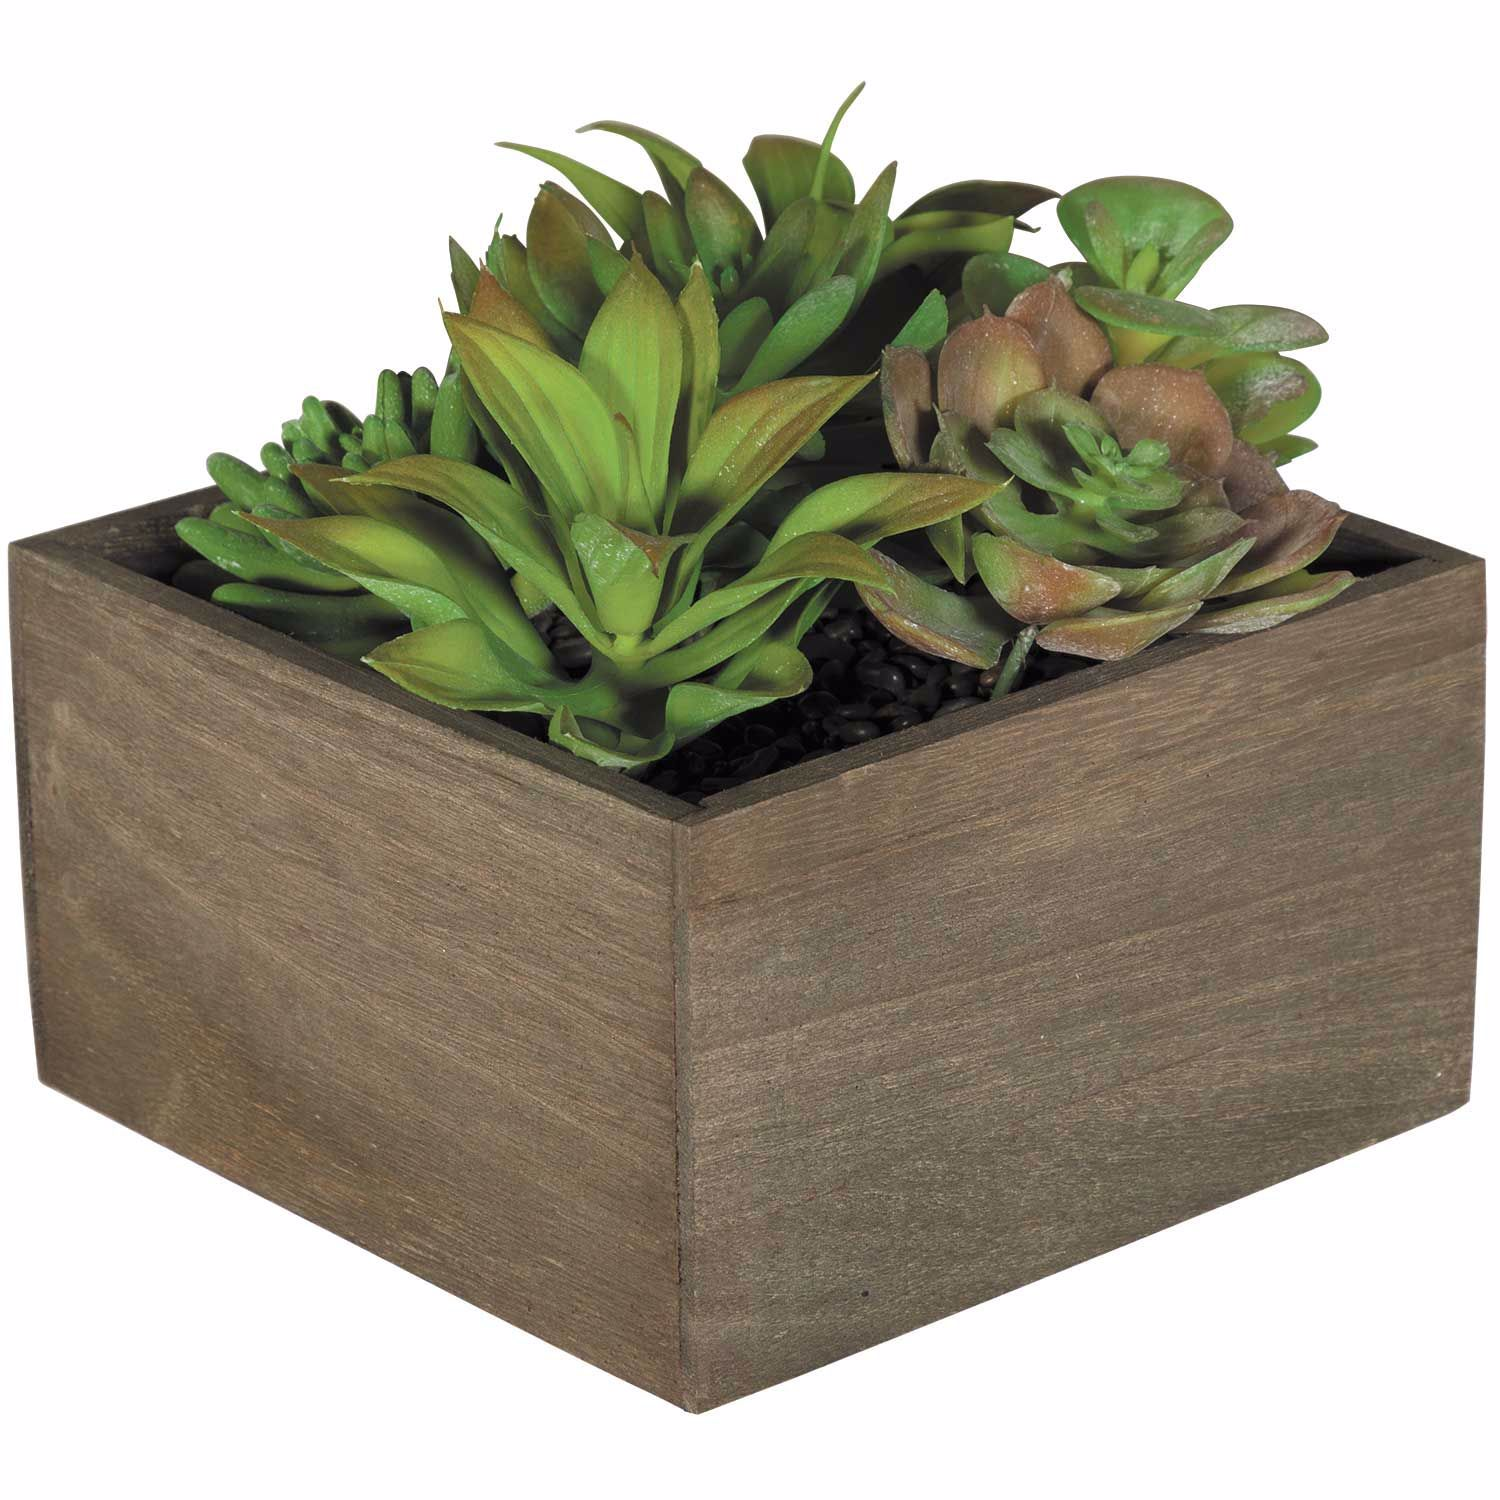 Picture of Succulents In Square Box